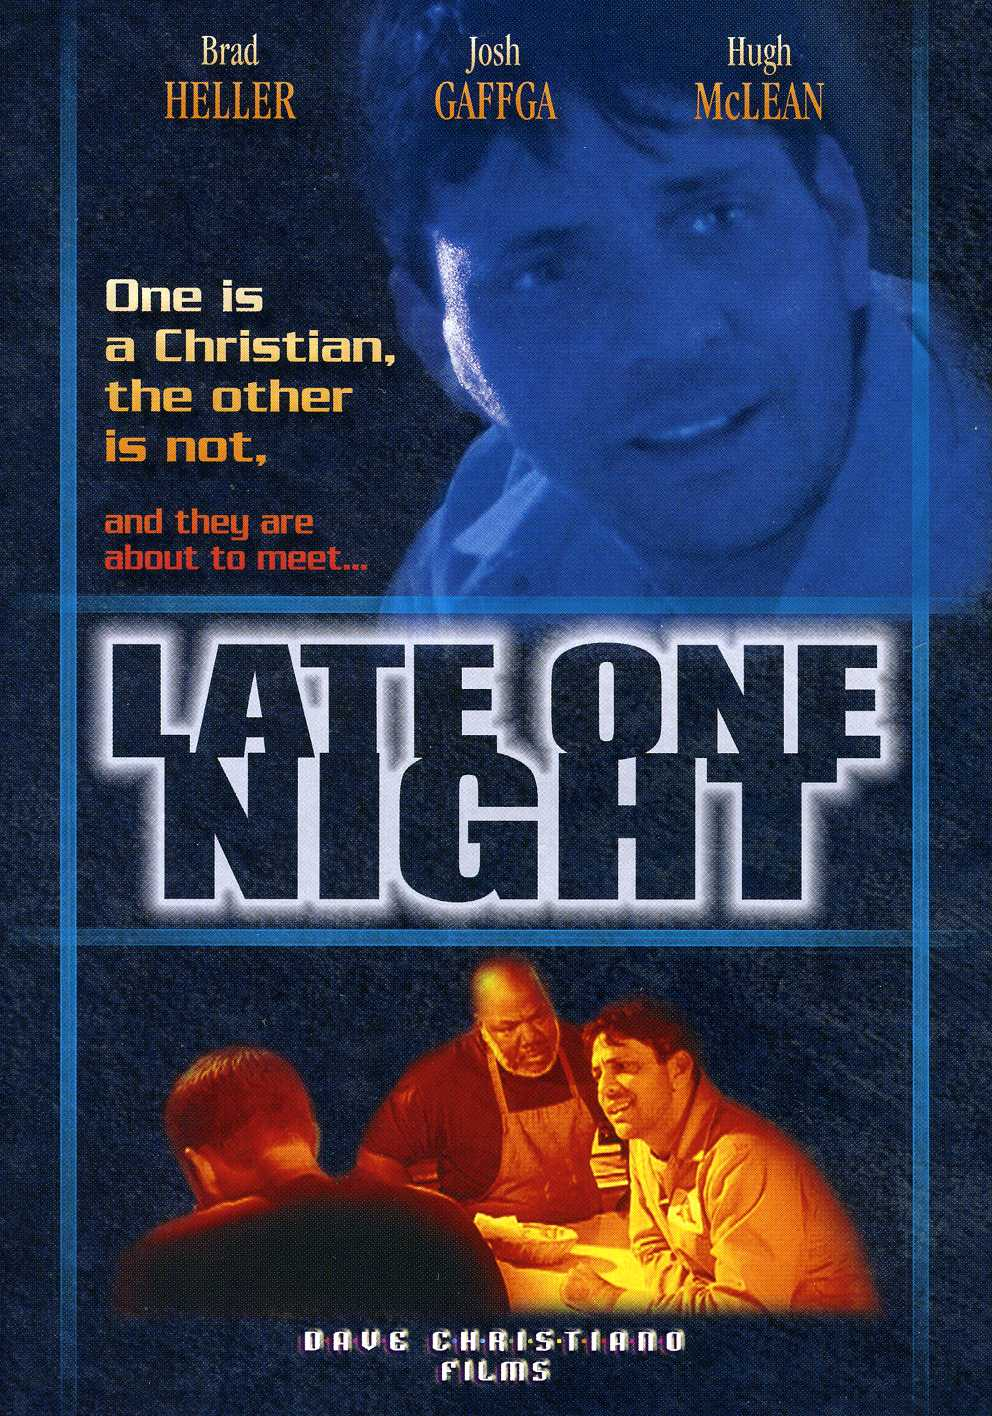 Late-One-Night-Christian-Movie-Christian-Film-DVD-Dave-Christiano